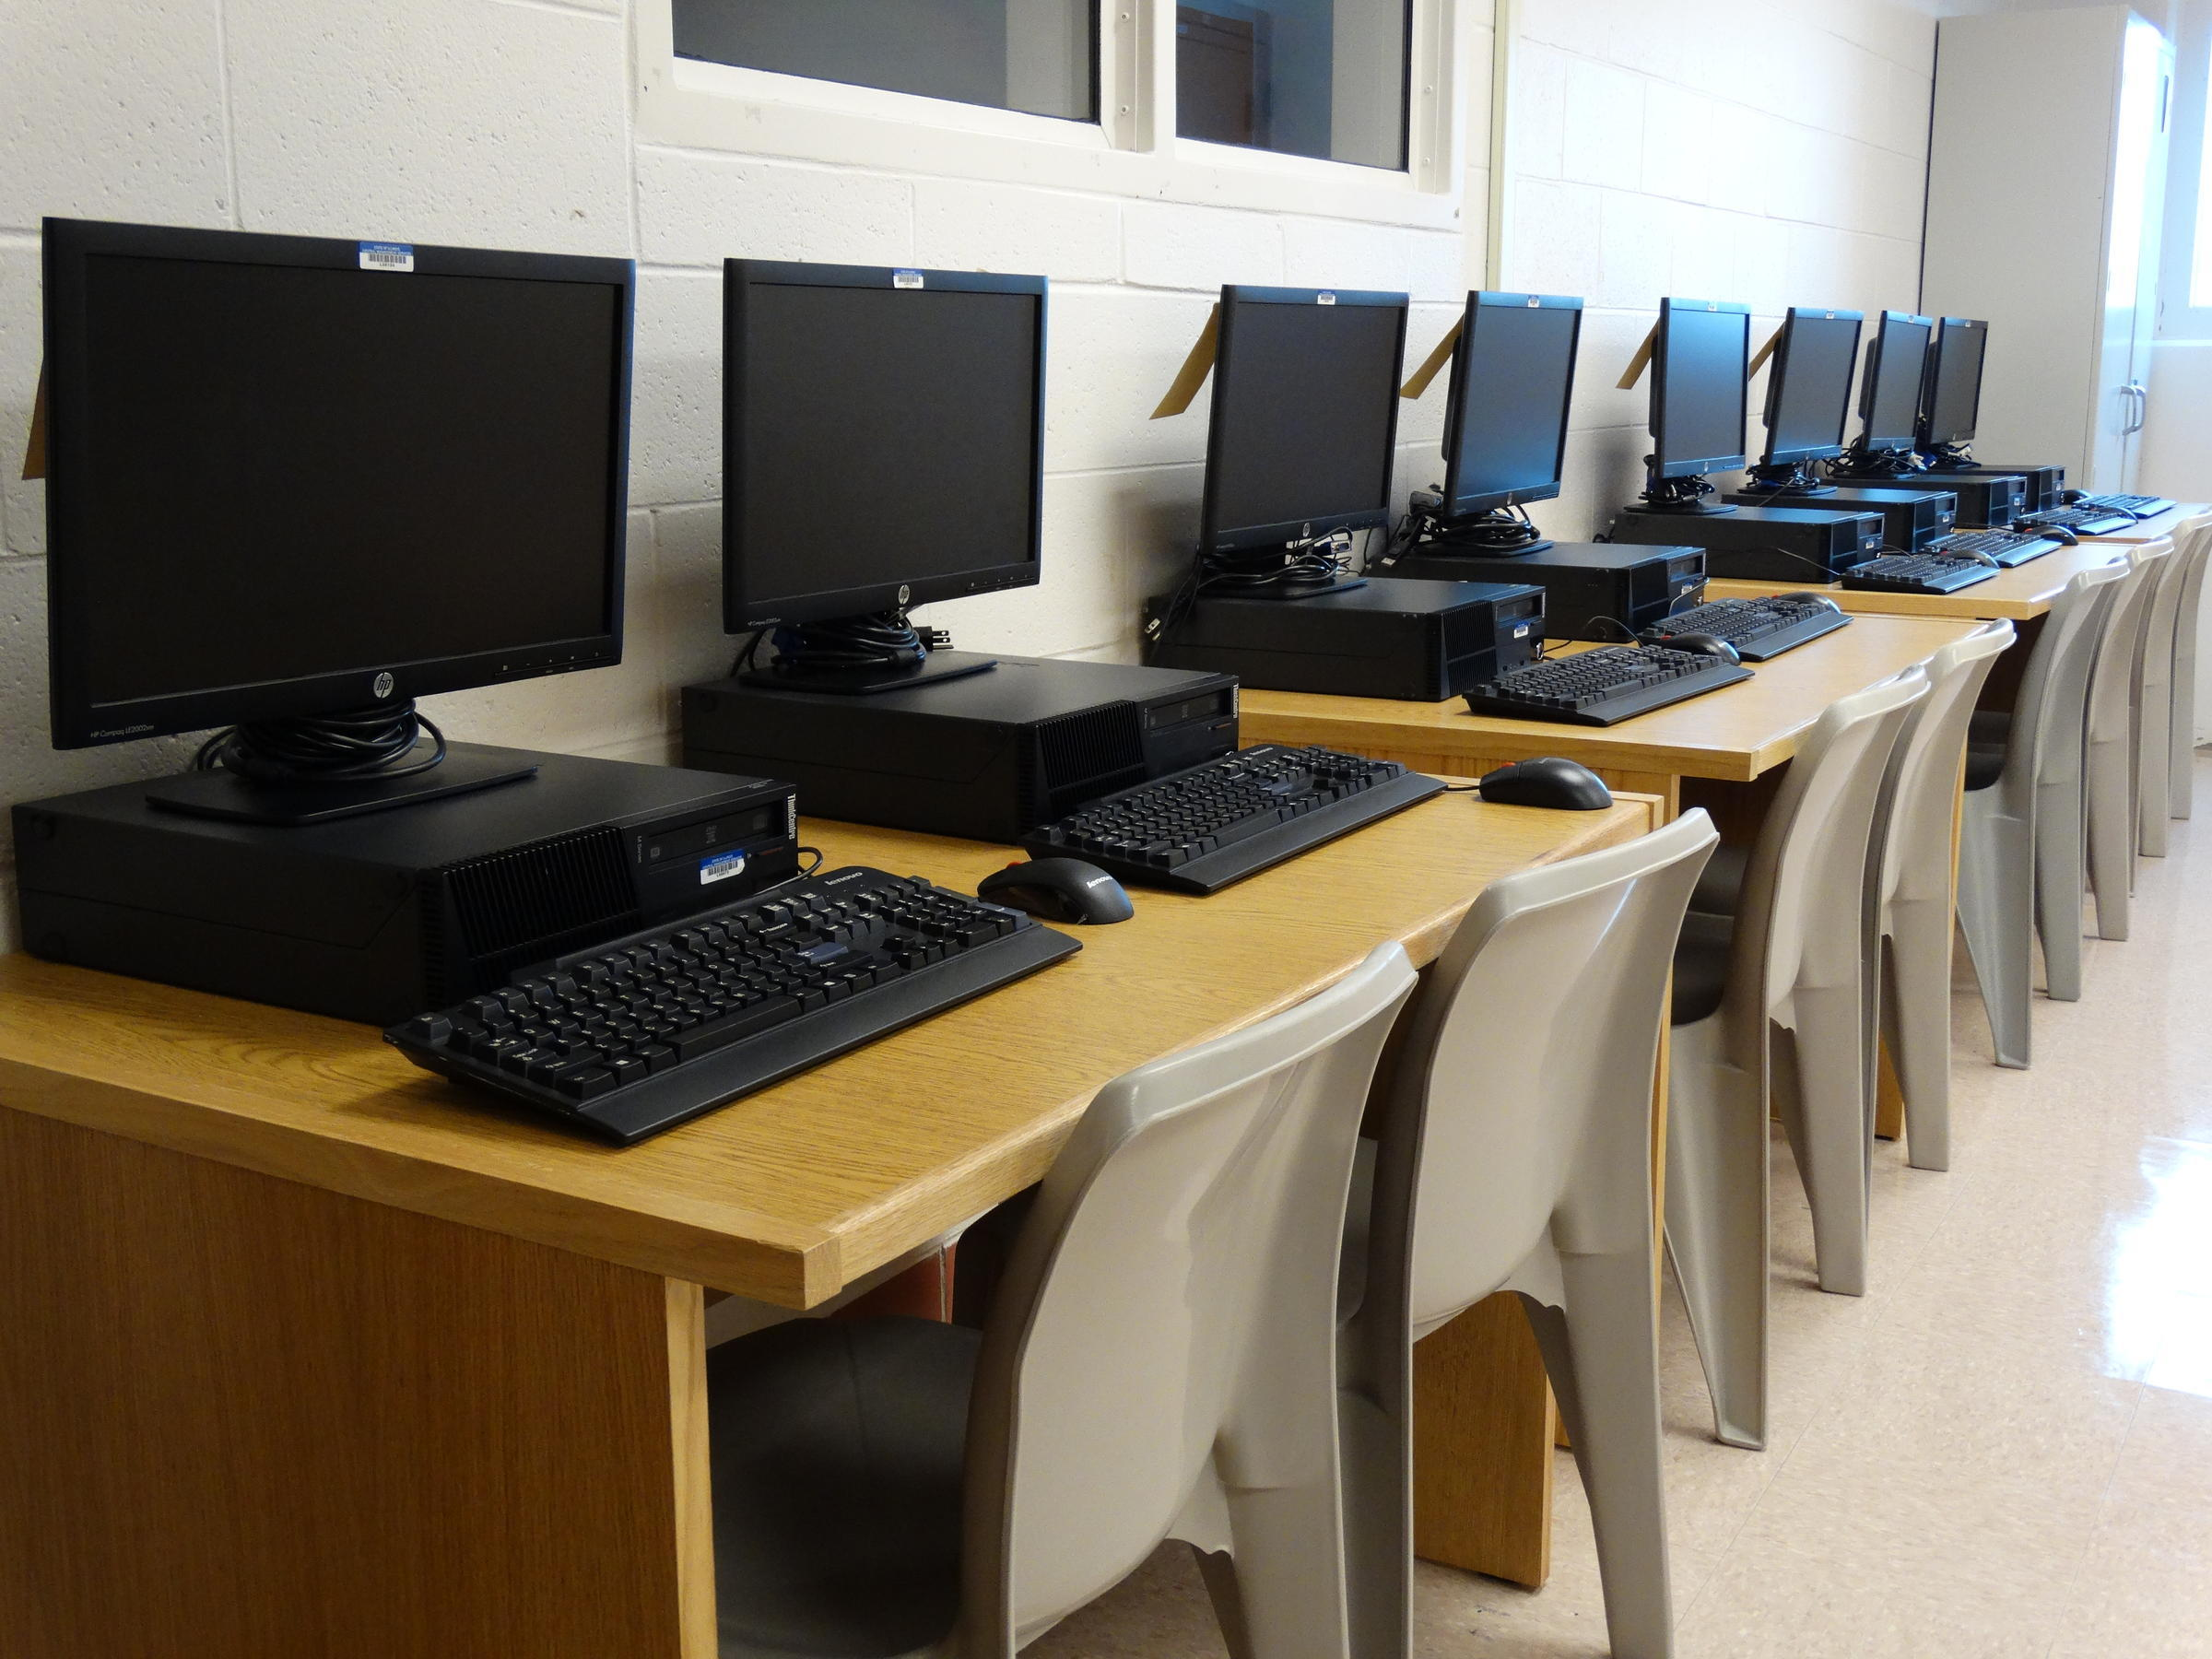 A View Of The Computer Stations Available To Inmates At The Kewanee  Facility.